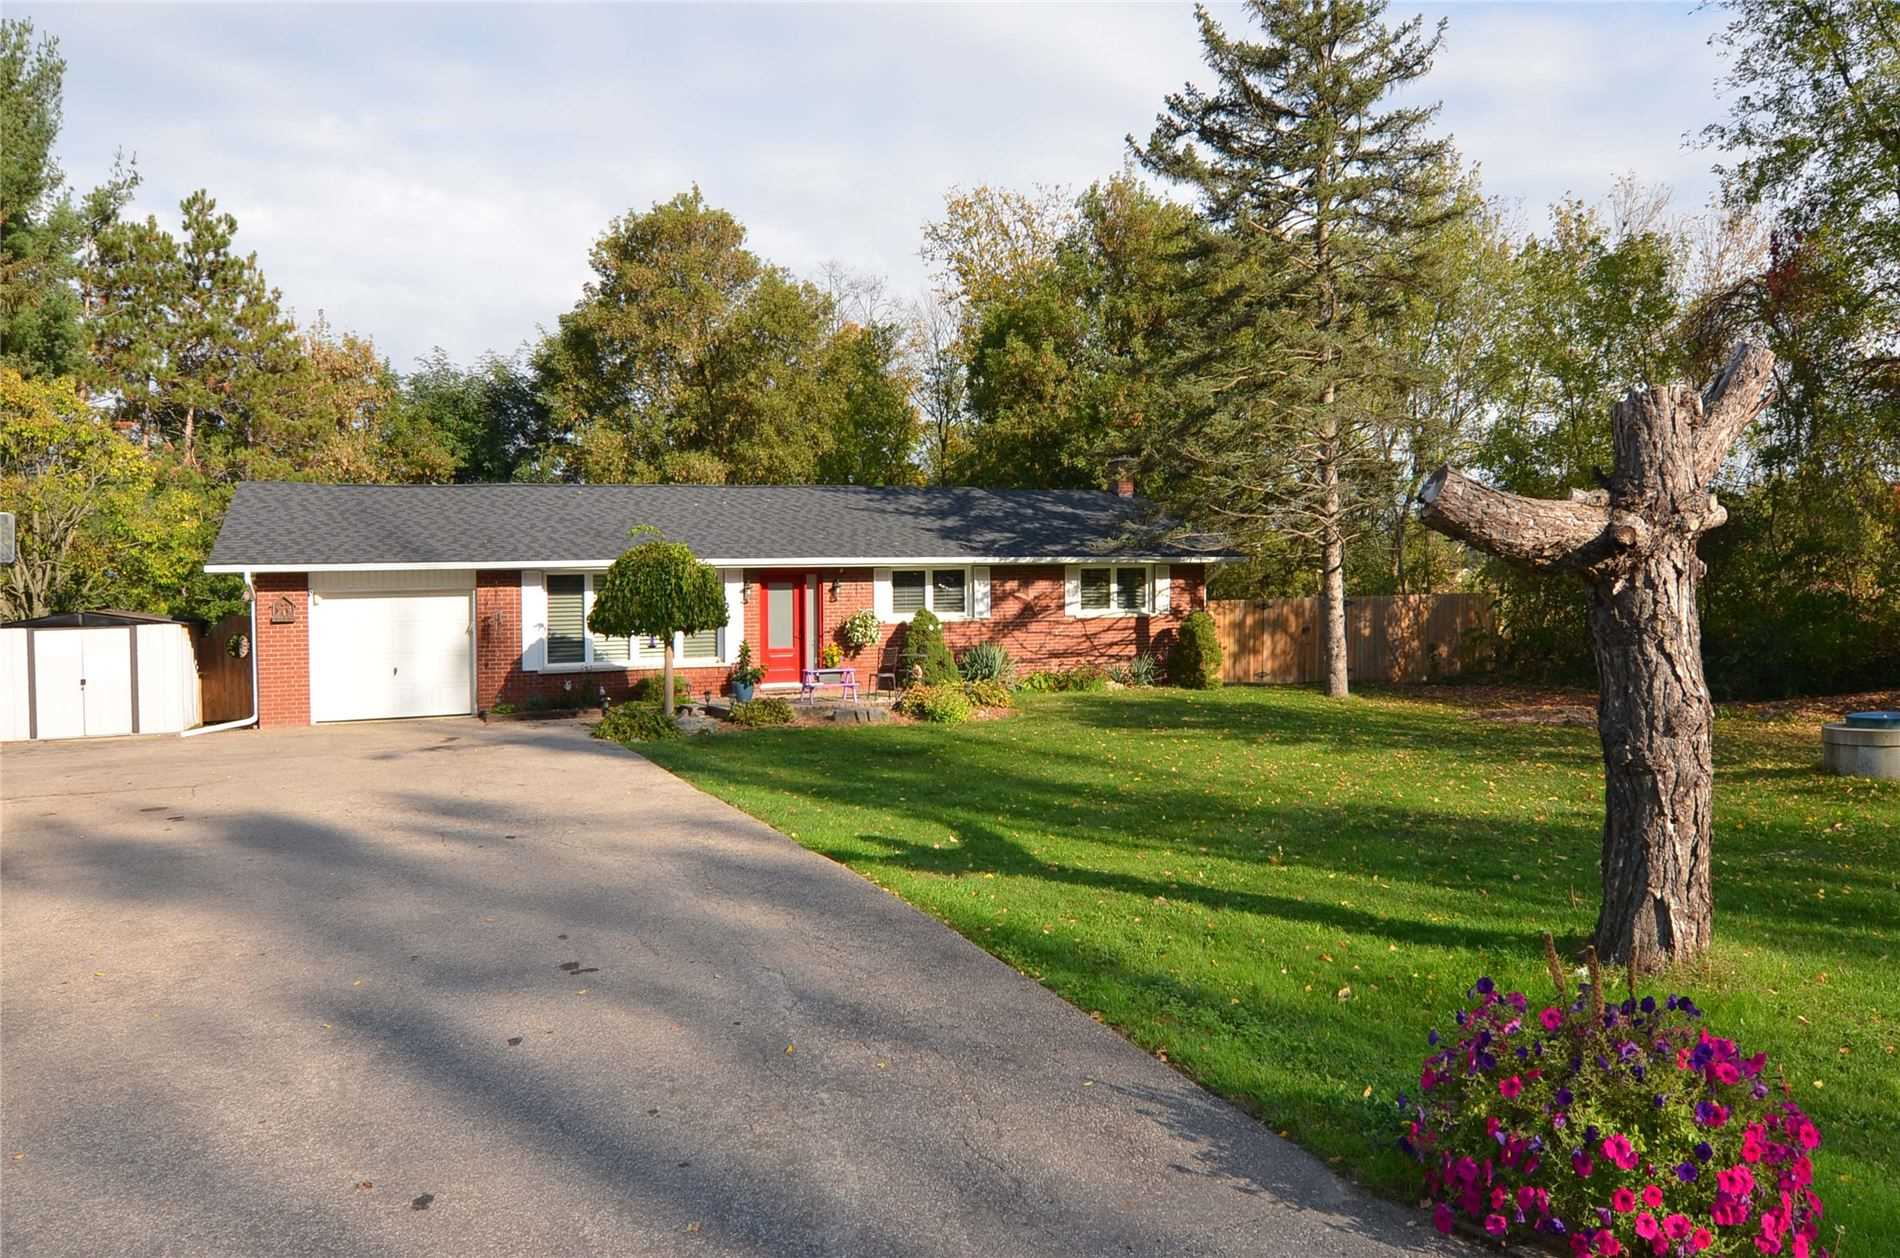 Detached house For Sale In Adjala-Tosorontio - 2485 County Rd 50, Adjala-Tosorontio, Ontario, Canada L0G 1L0 , 3 Bedrooms Bedrooms, ,3 BathroomsBathrooms,Detached,For Sale,County Rd 50